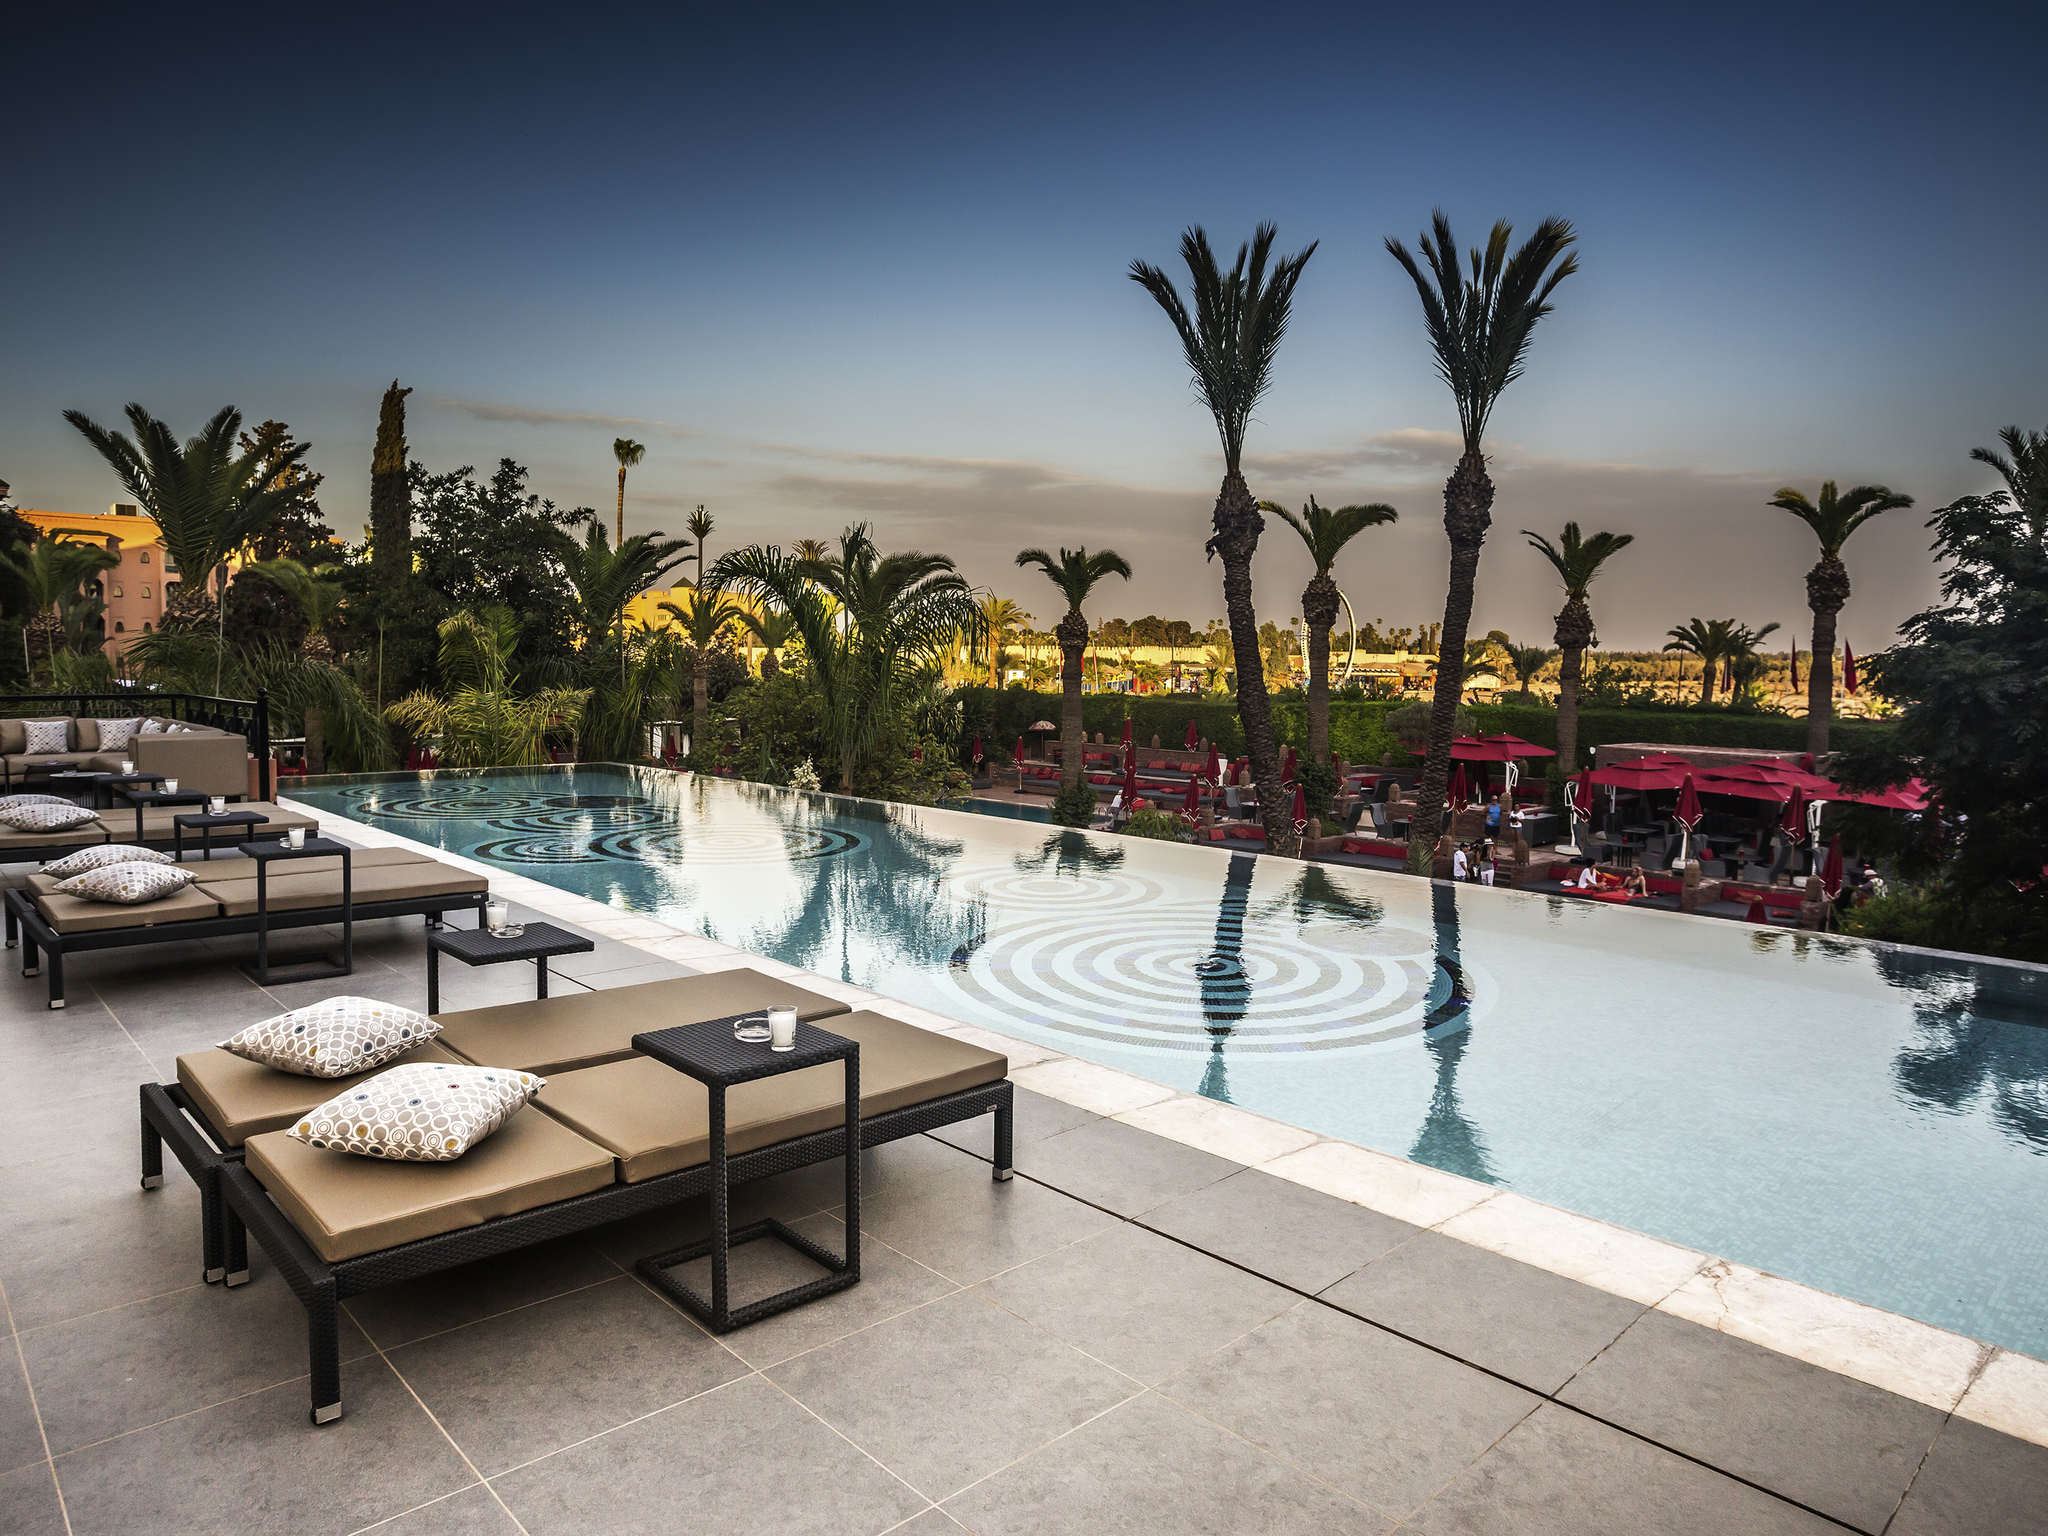 Hotell – Sofitel Marrakech Lounge and Spa